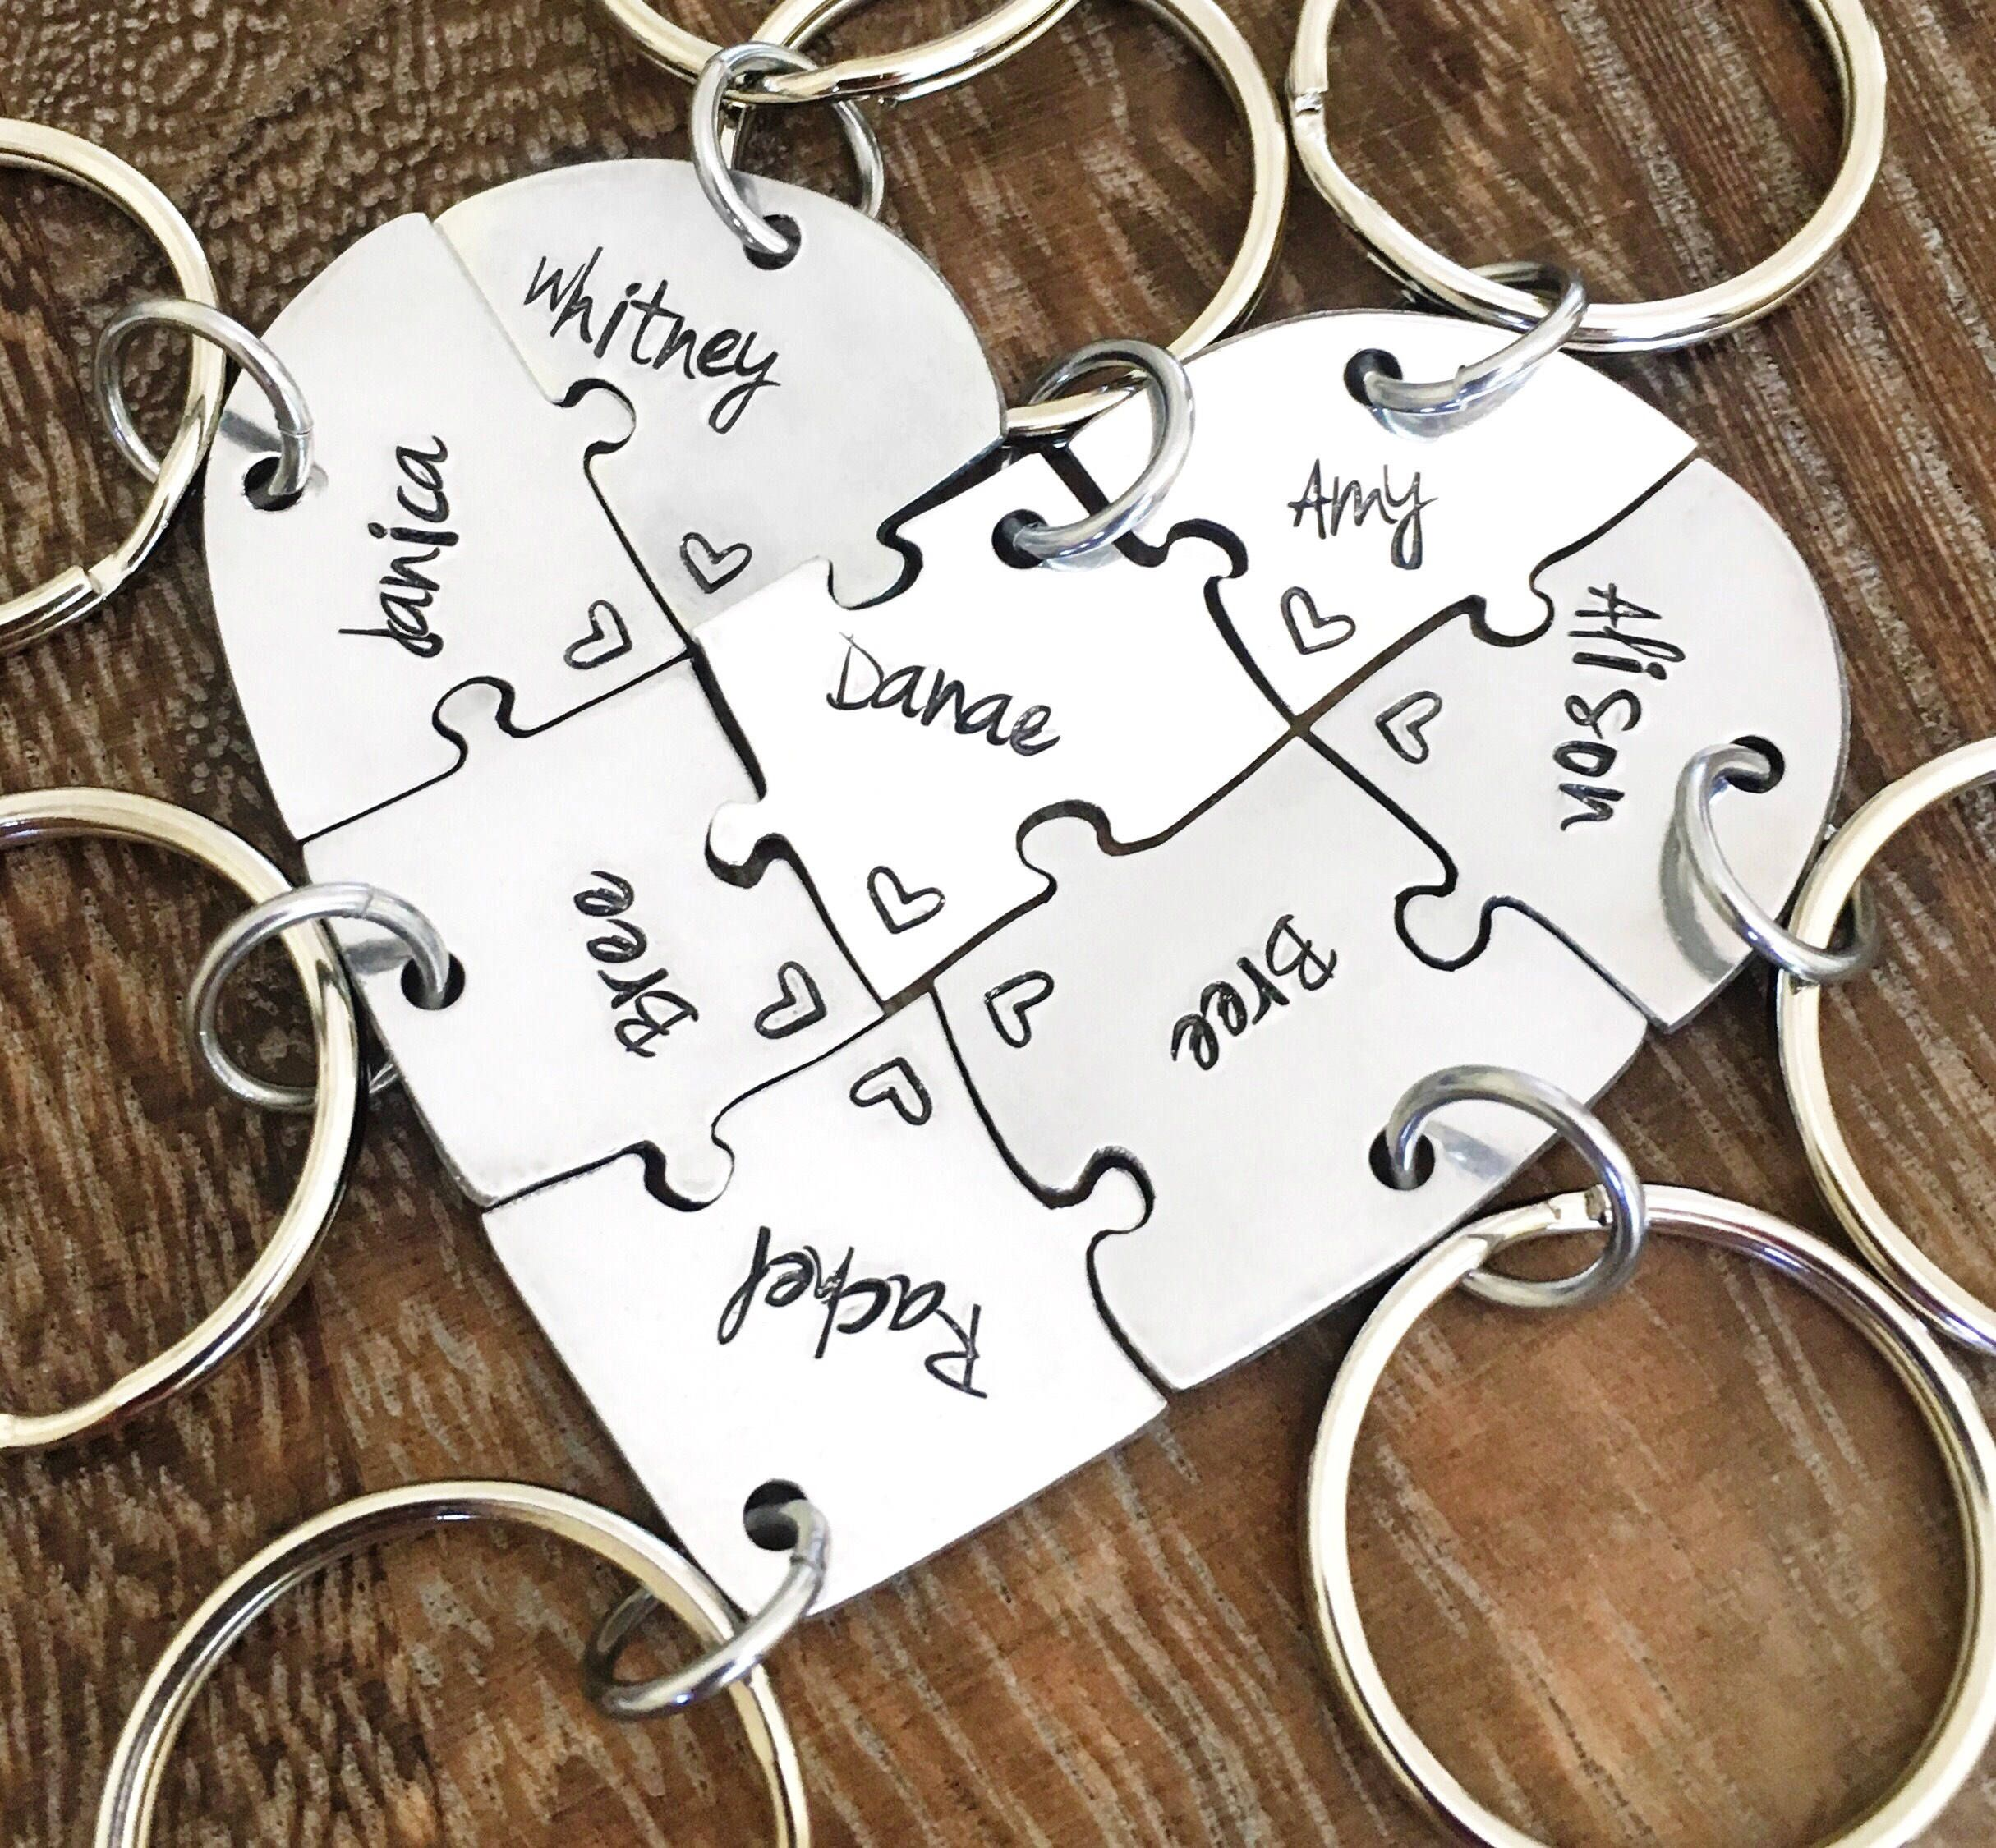 Hand Engraved Friendship Heart Puzzle Keychain Family Friends The Little Things She Needs Kashira 2b Brown Cokelat 36 8 Pieces